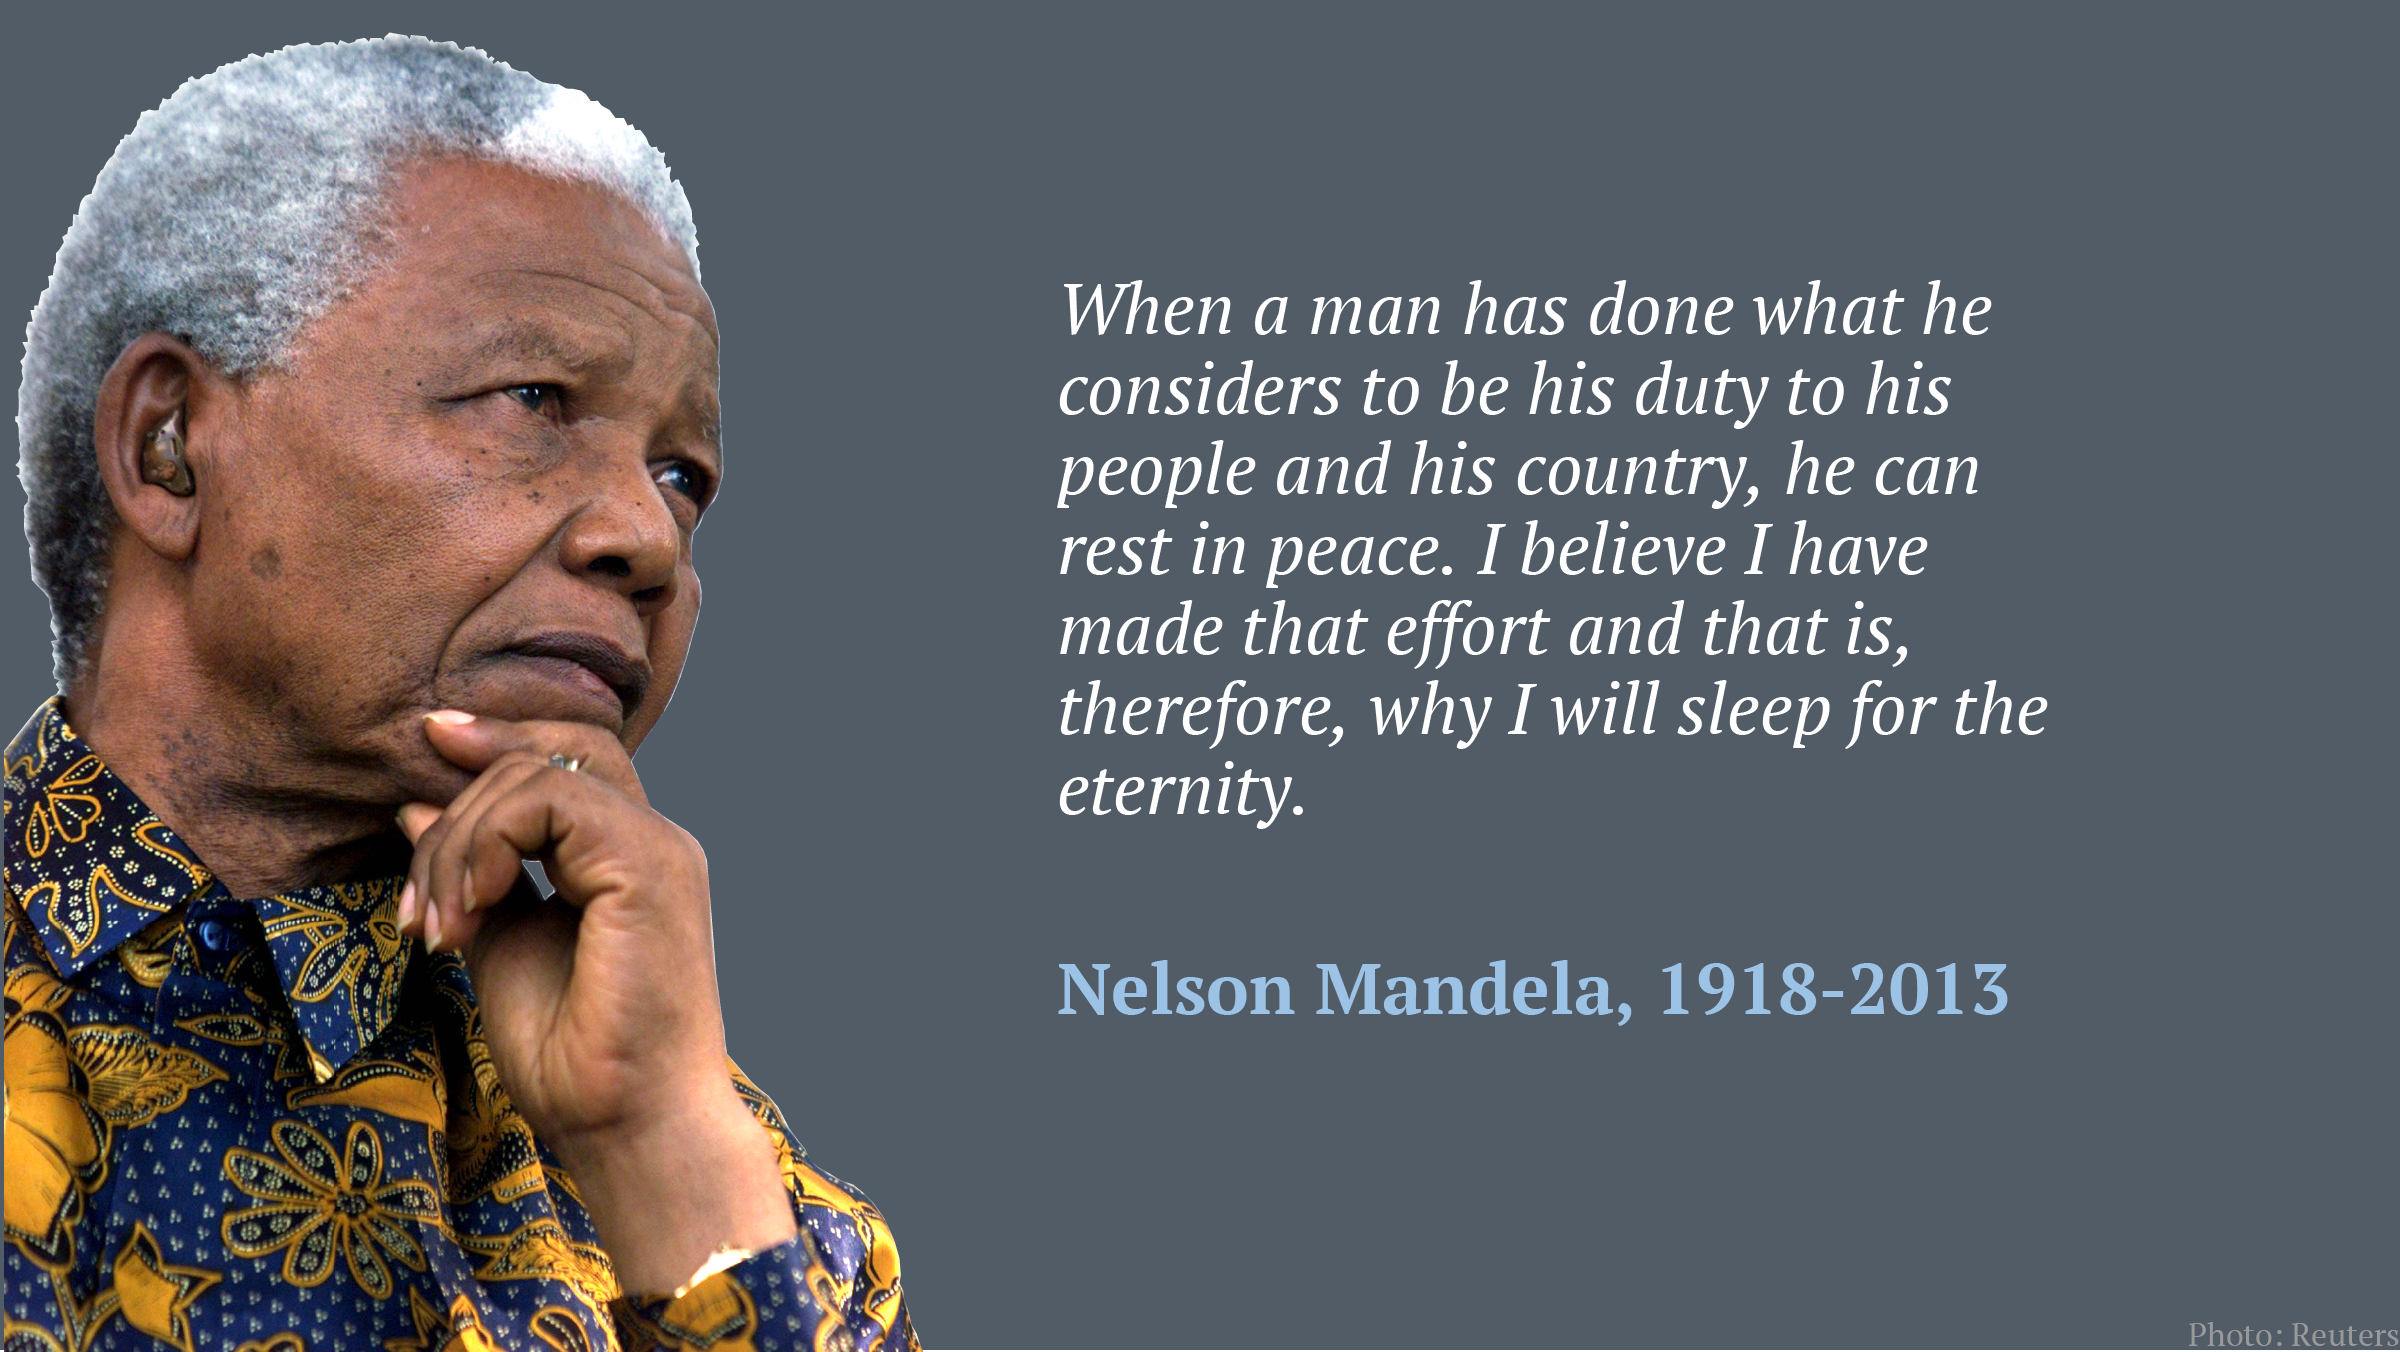 The Wisdom Of Nelson Mandela Quotes From The Most Inspiring Leader